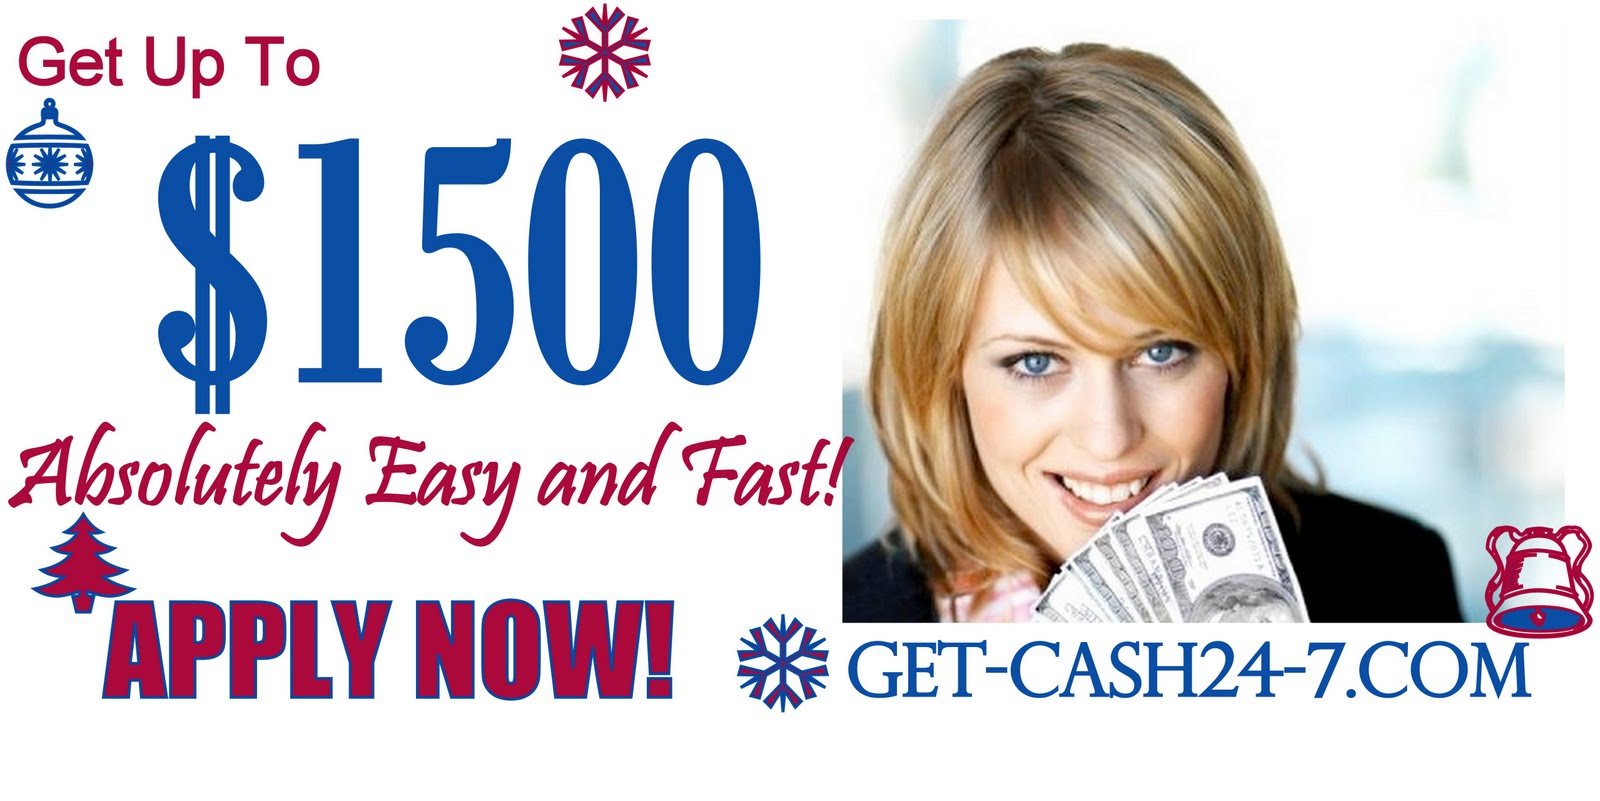 Payday loan yorba linda blvd picture 10